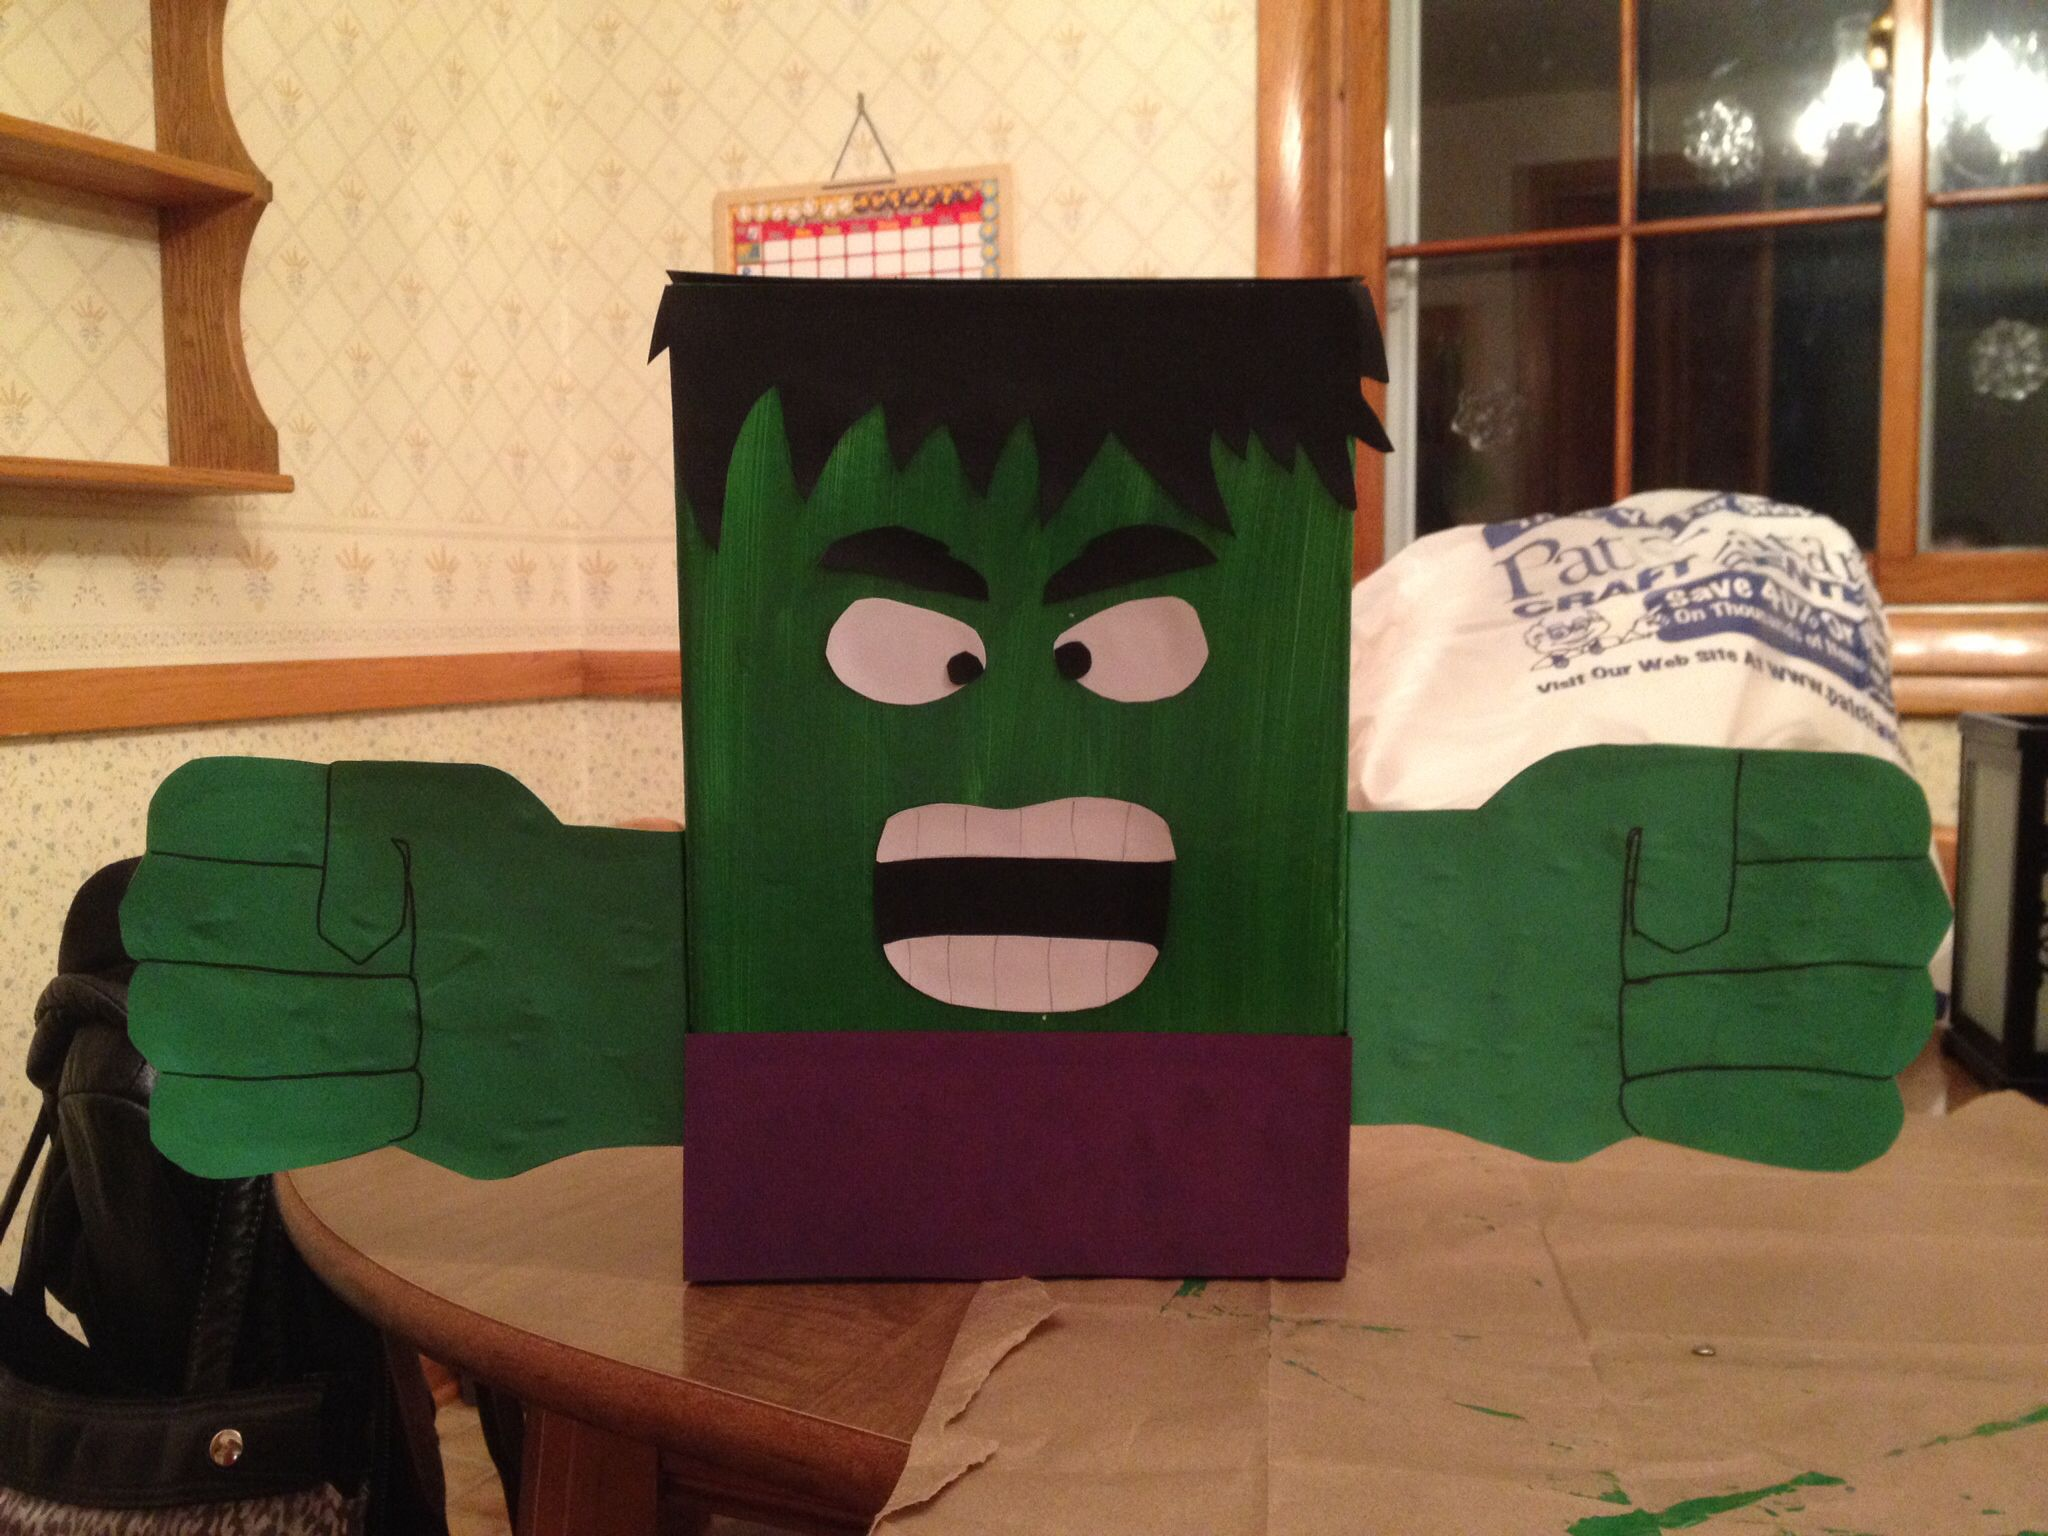 Incredible Hulk Valentines Day Box Valentine – Valentine Card Holders for Preschoolers